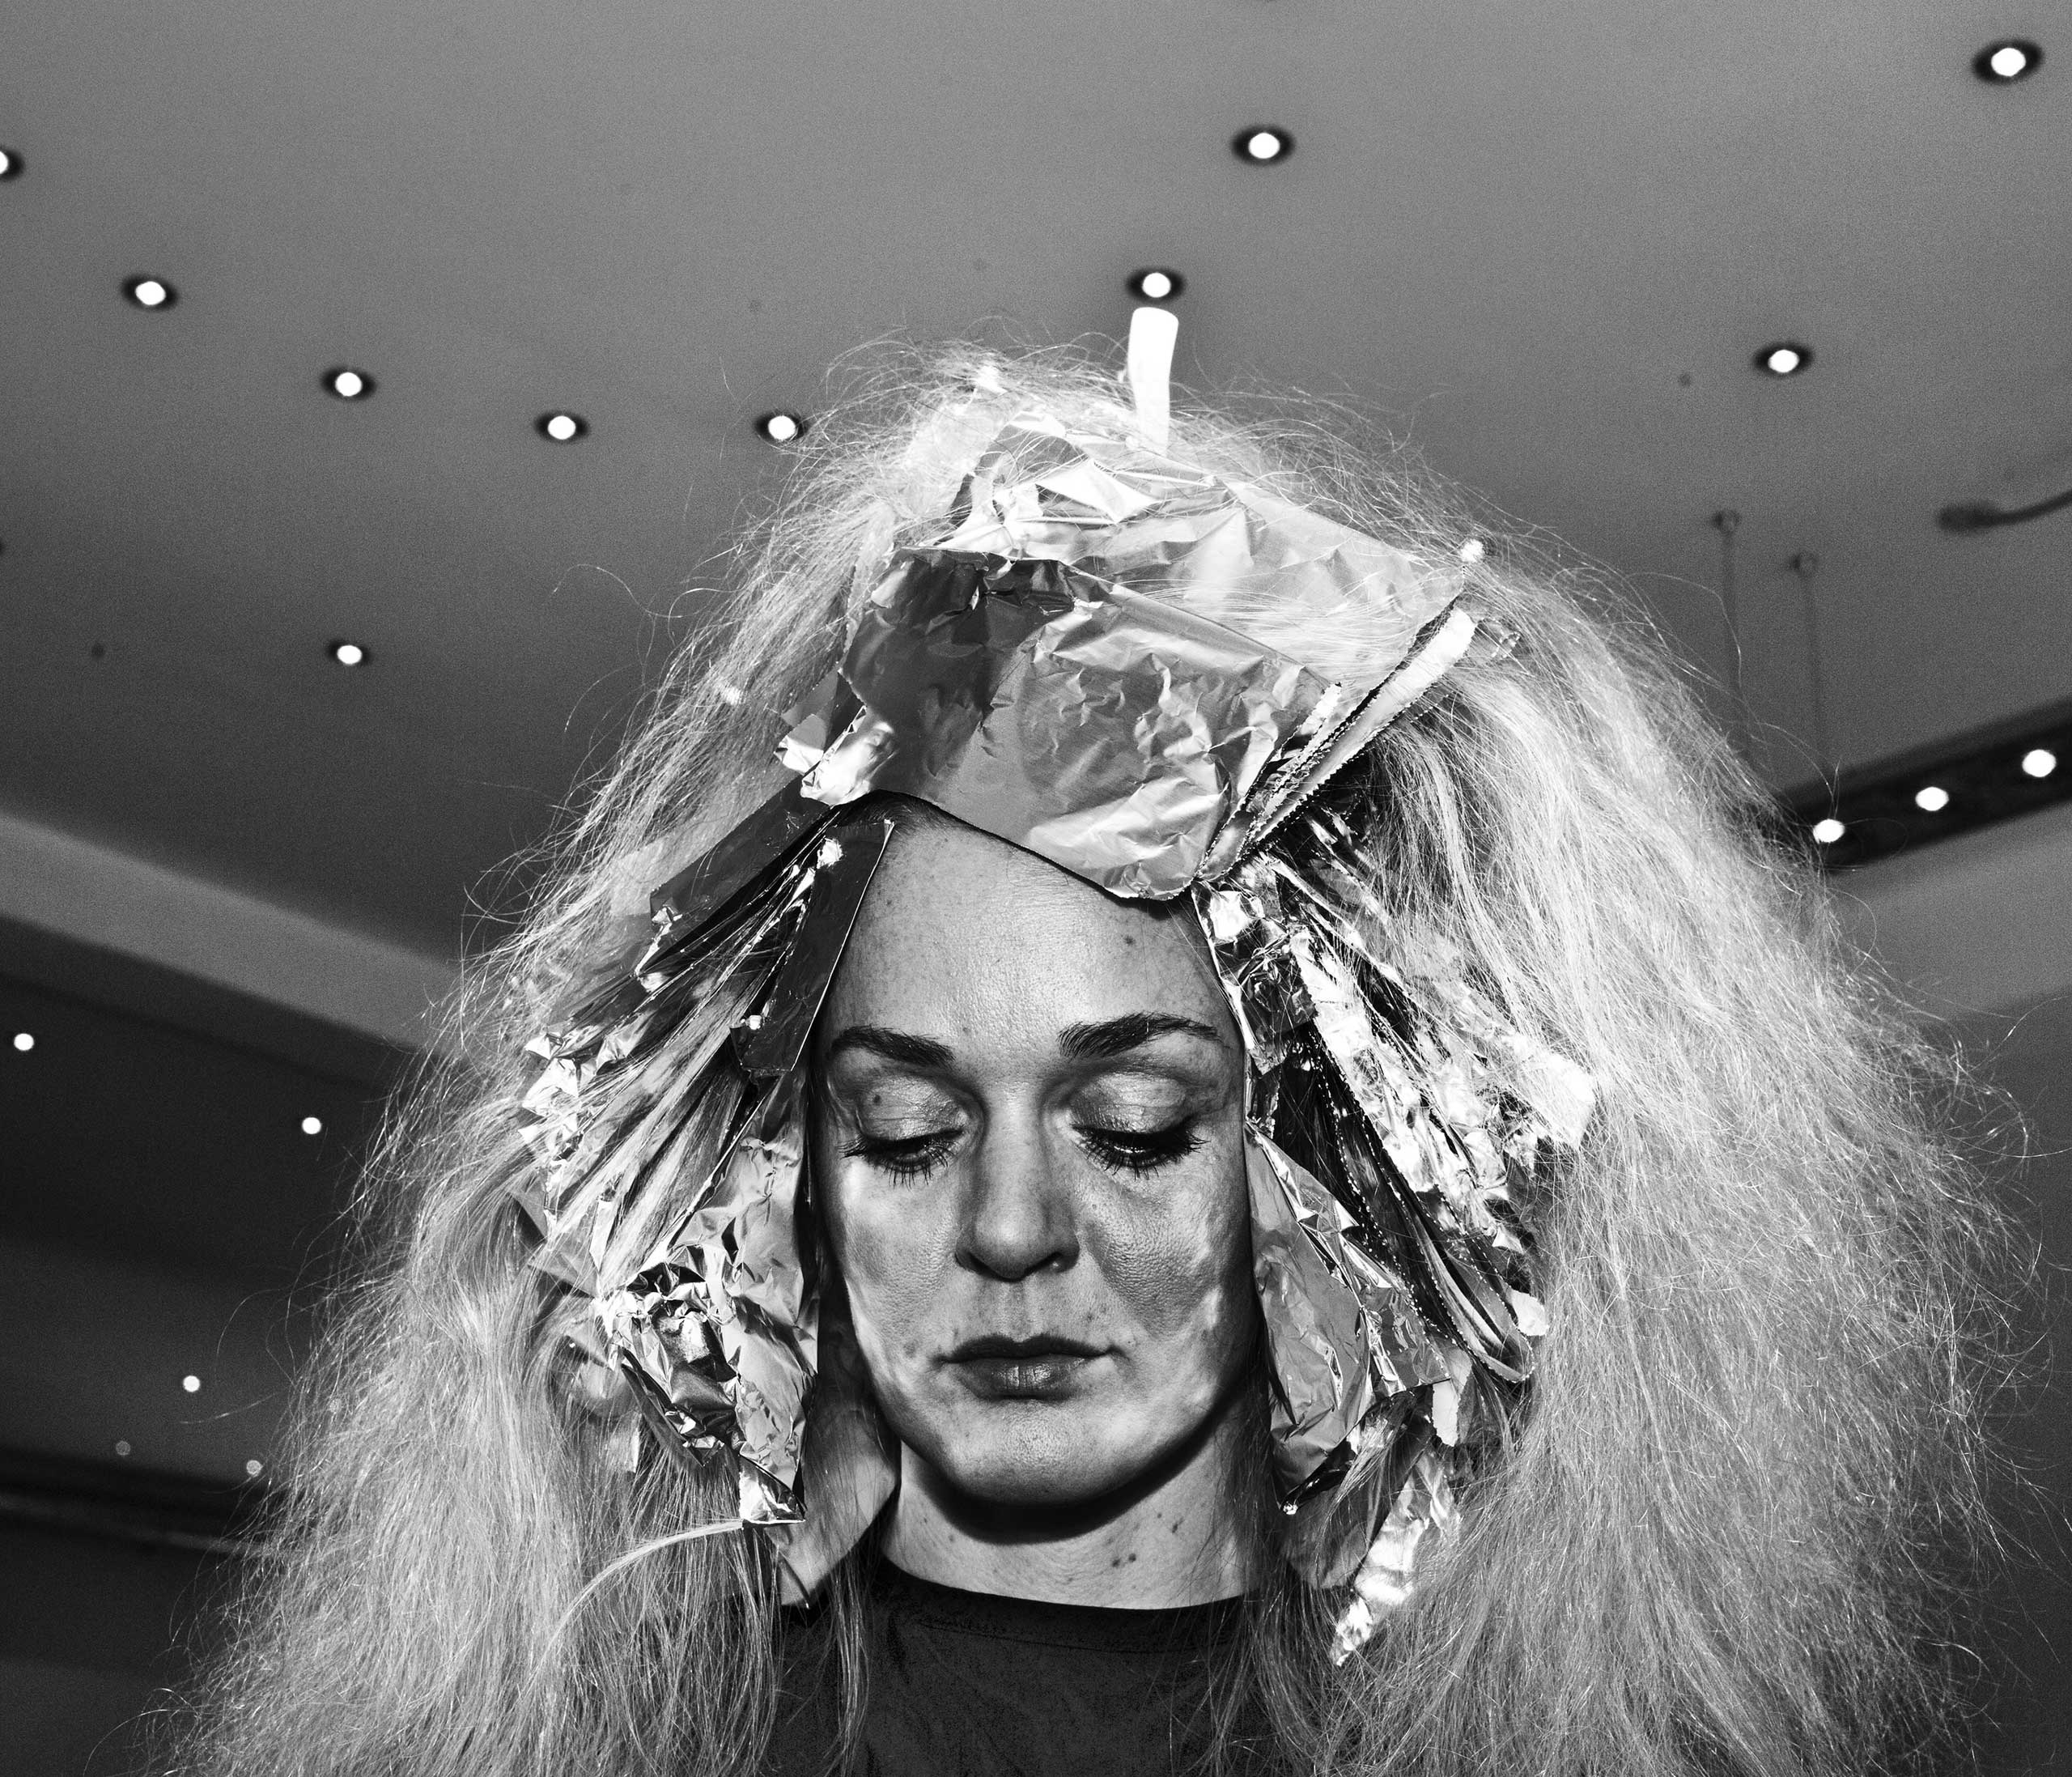 Nominated in the Portraiture category. Jens Juul work on Copenhagen's hair salons.